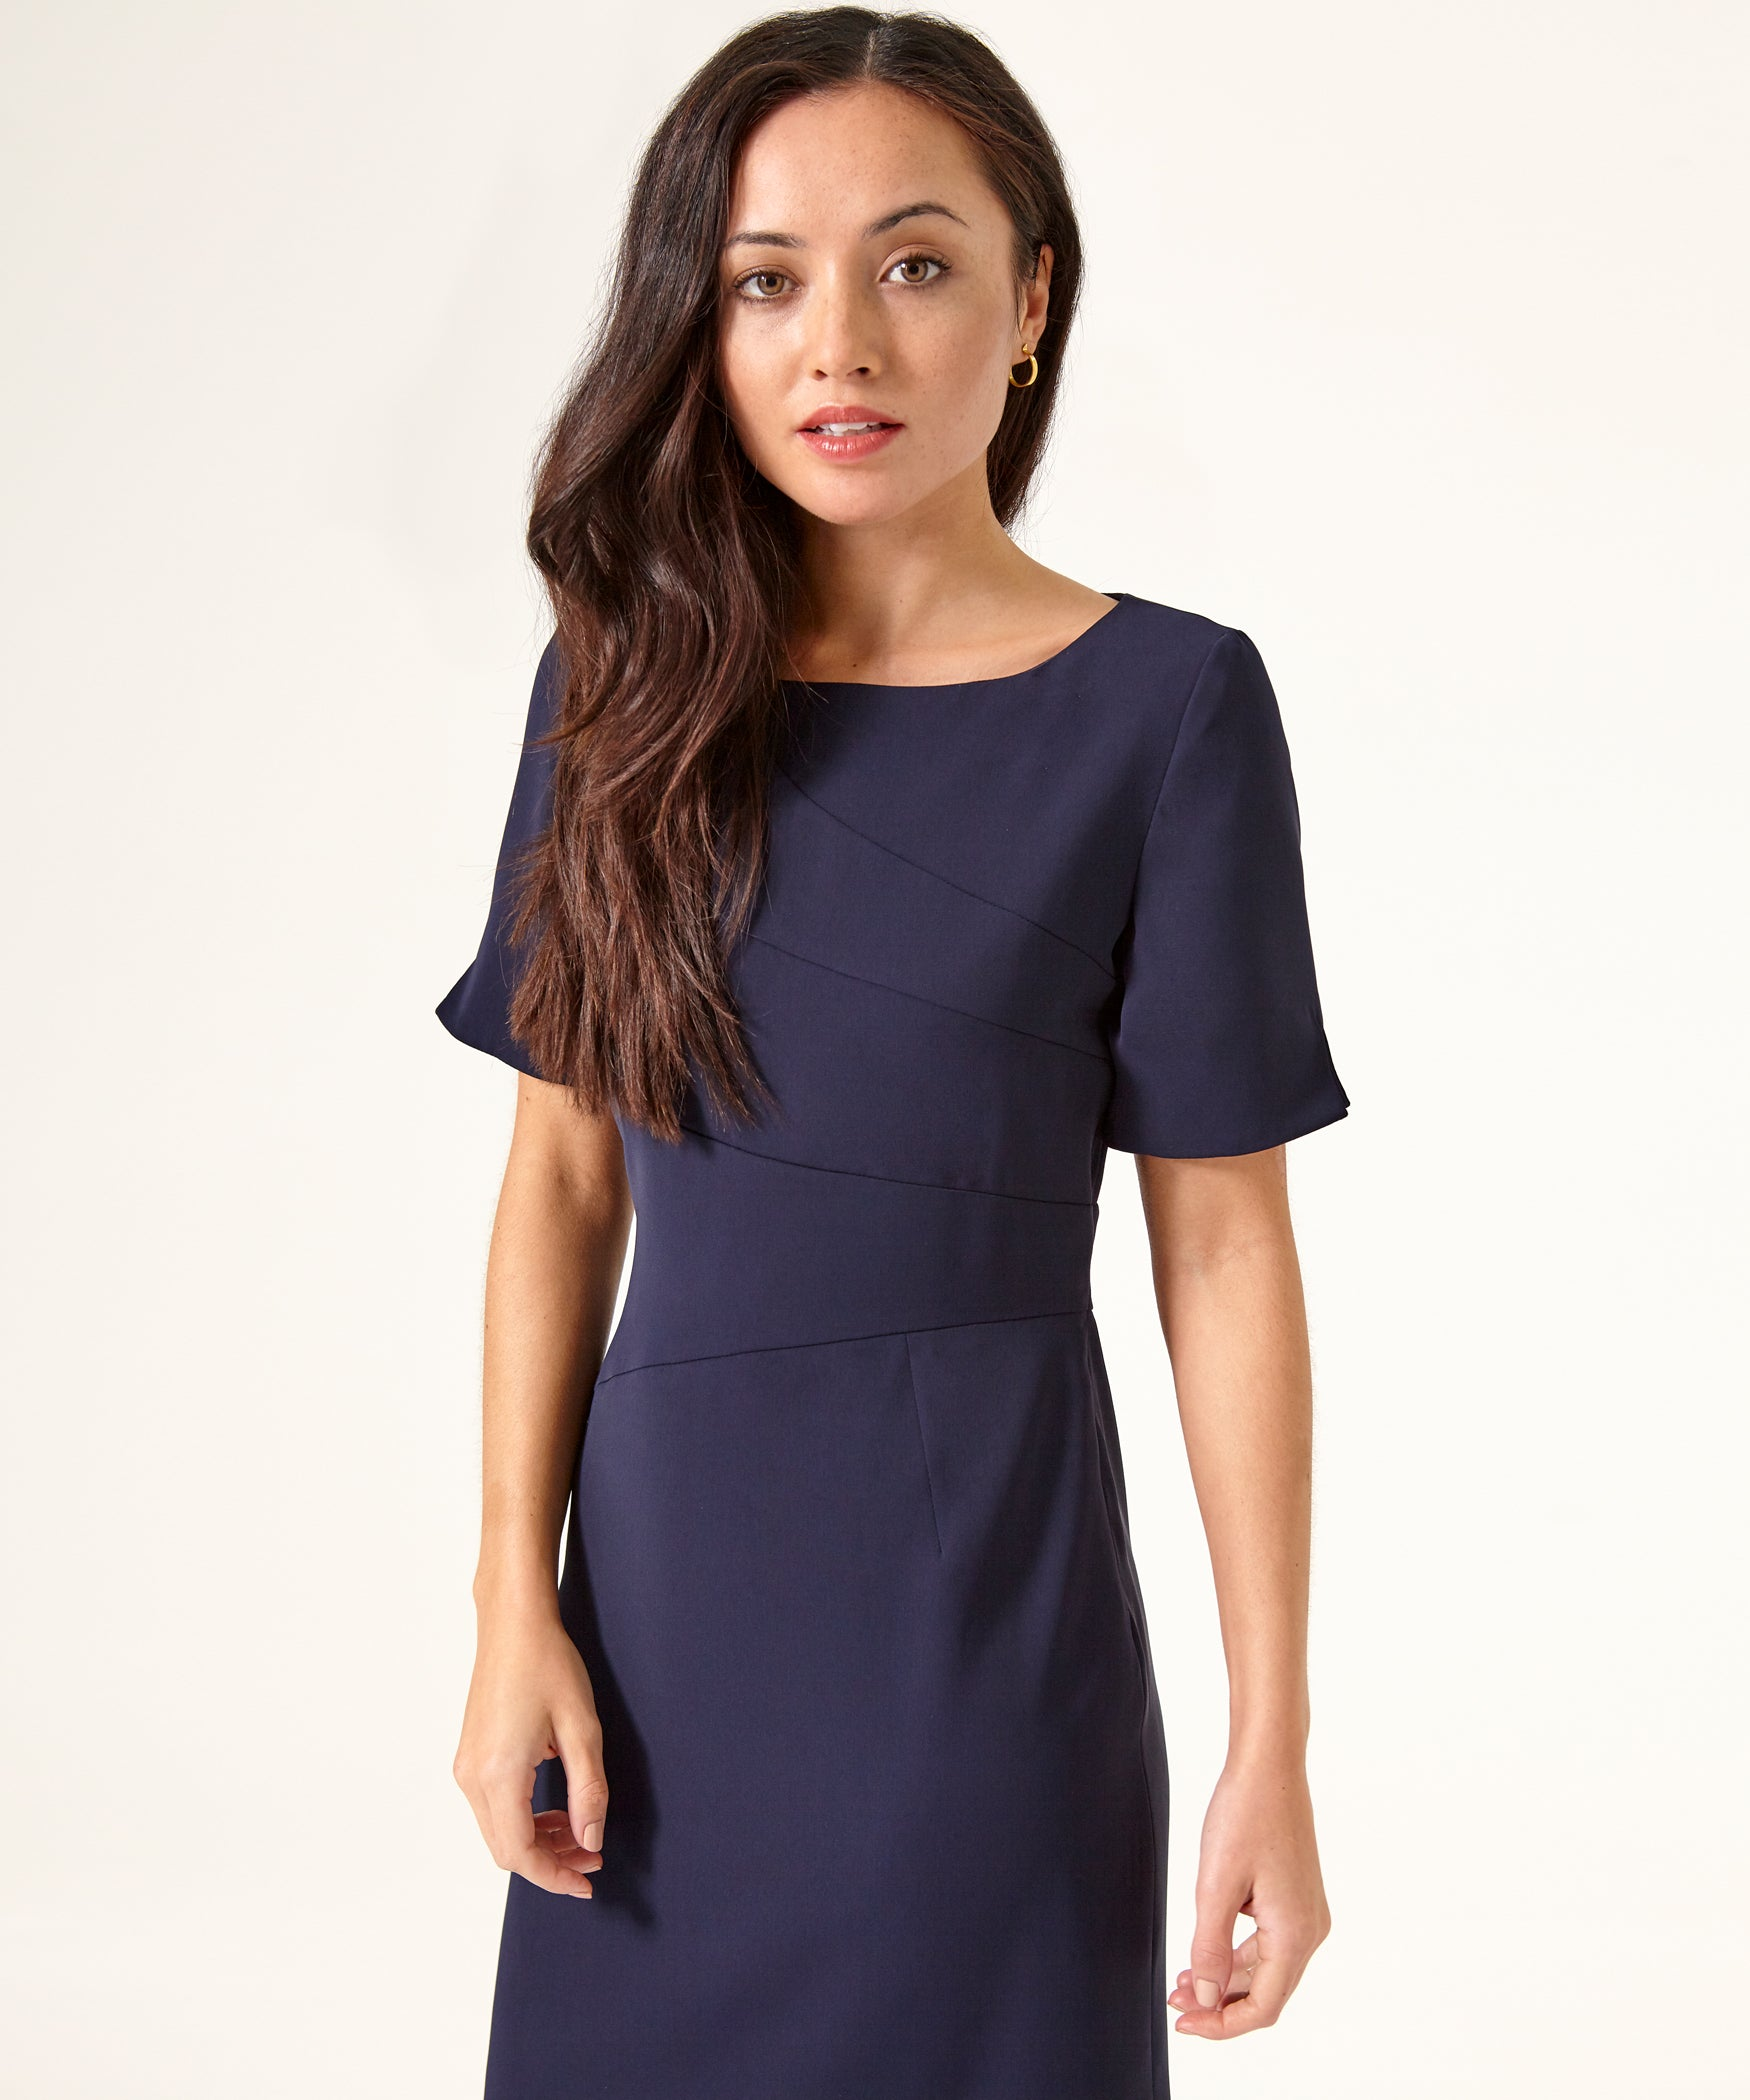 Petite Navy Panel Shift Dress - Jennifer-Anne